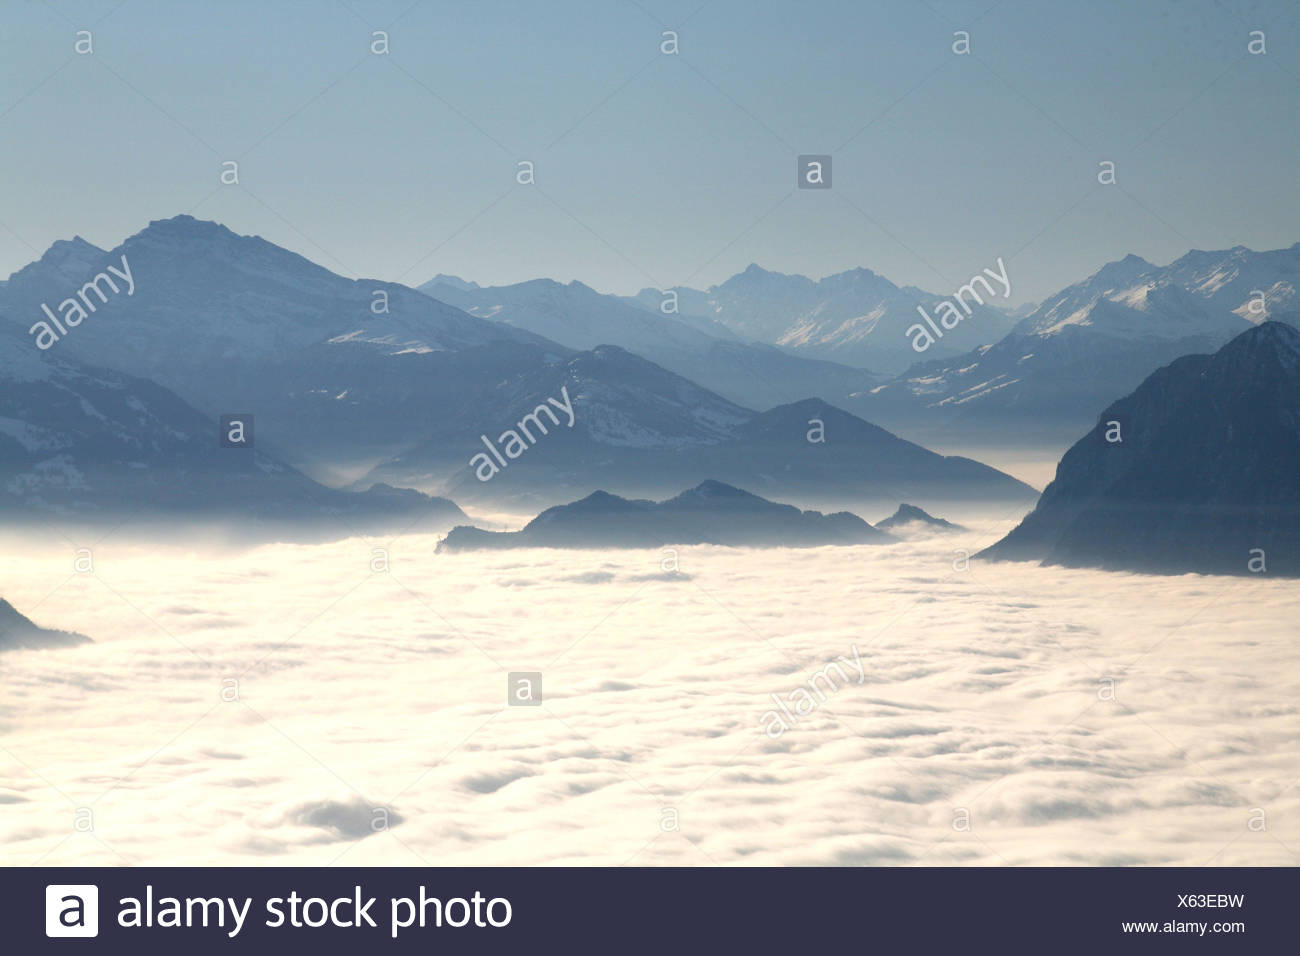 View onto the sea of fog in the Rhine river valley, East Swiss Mountains from the Hoher Kasten mountain - Stock Image